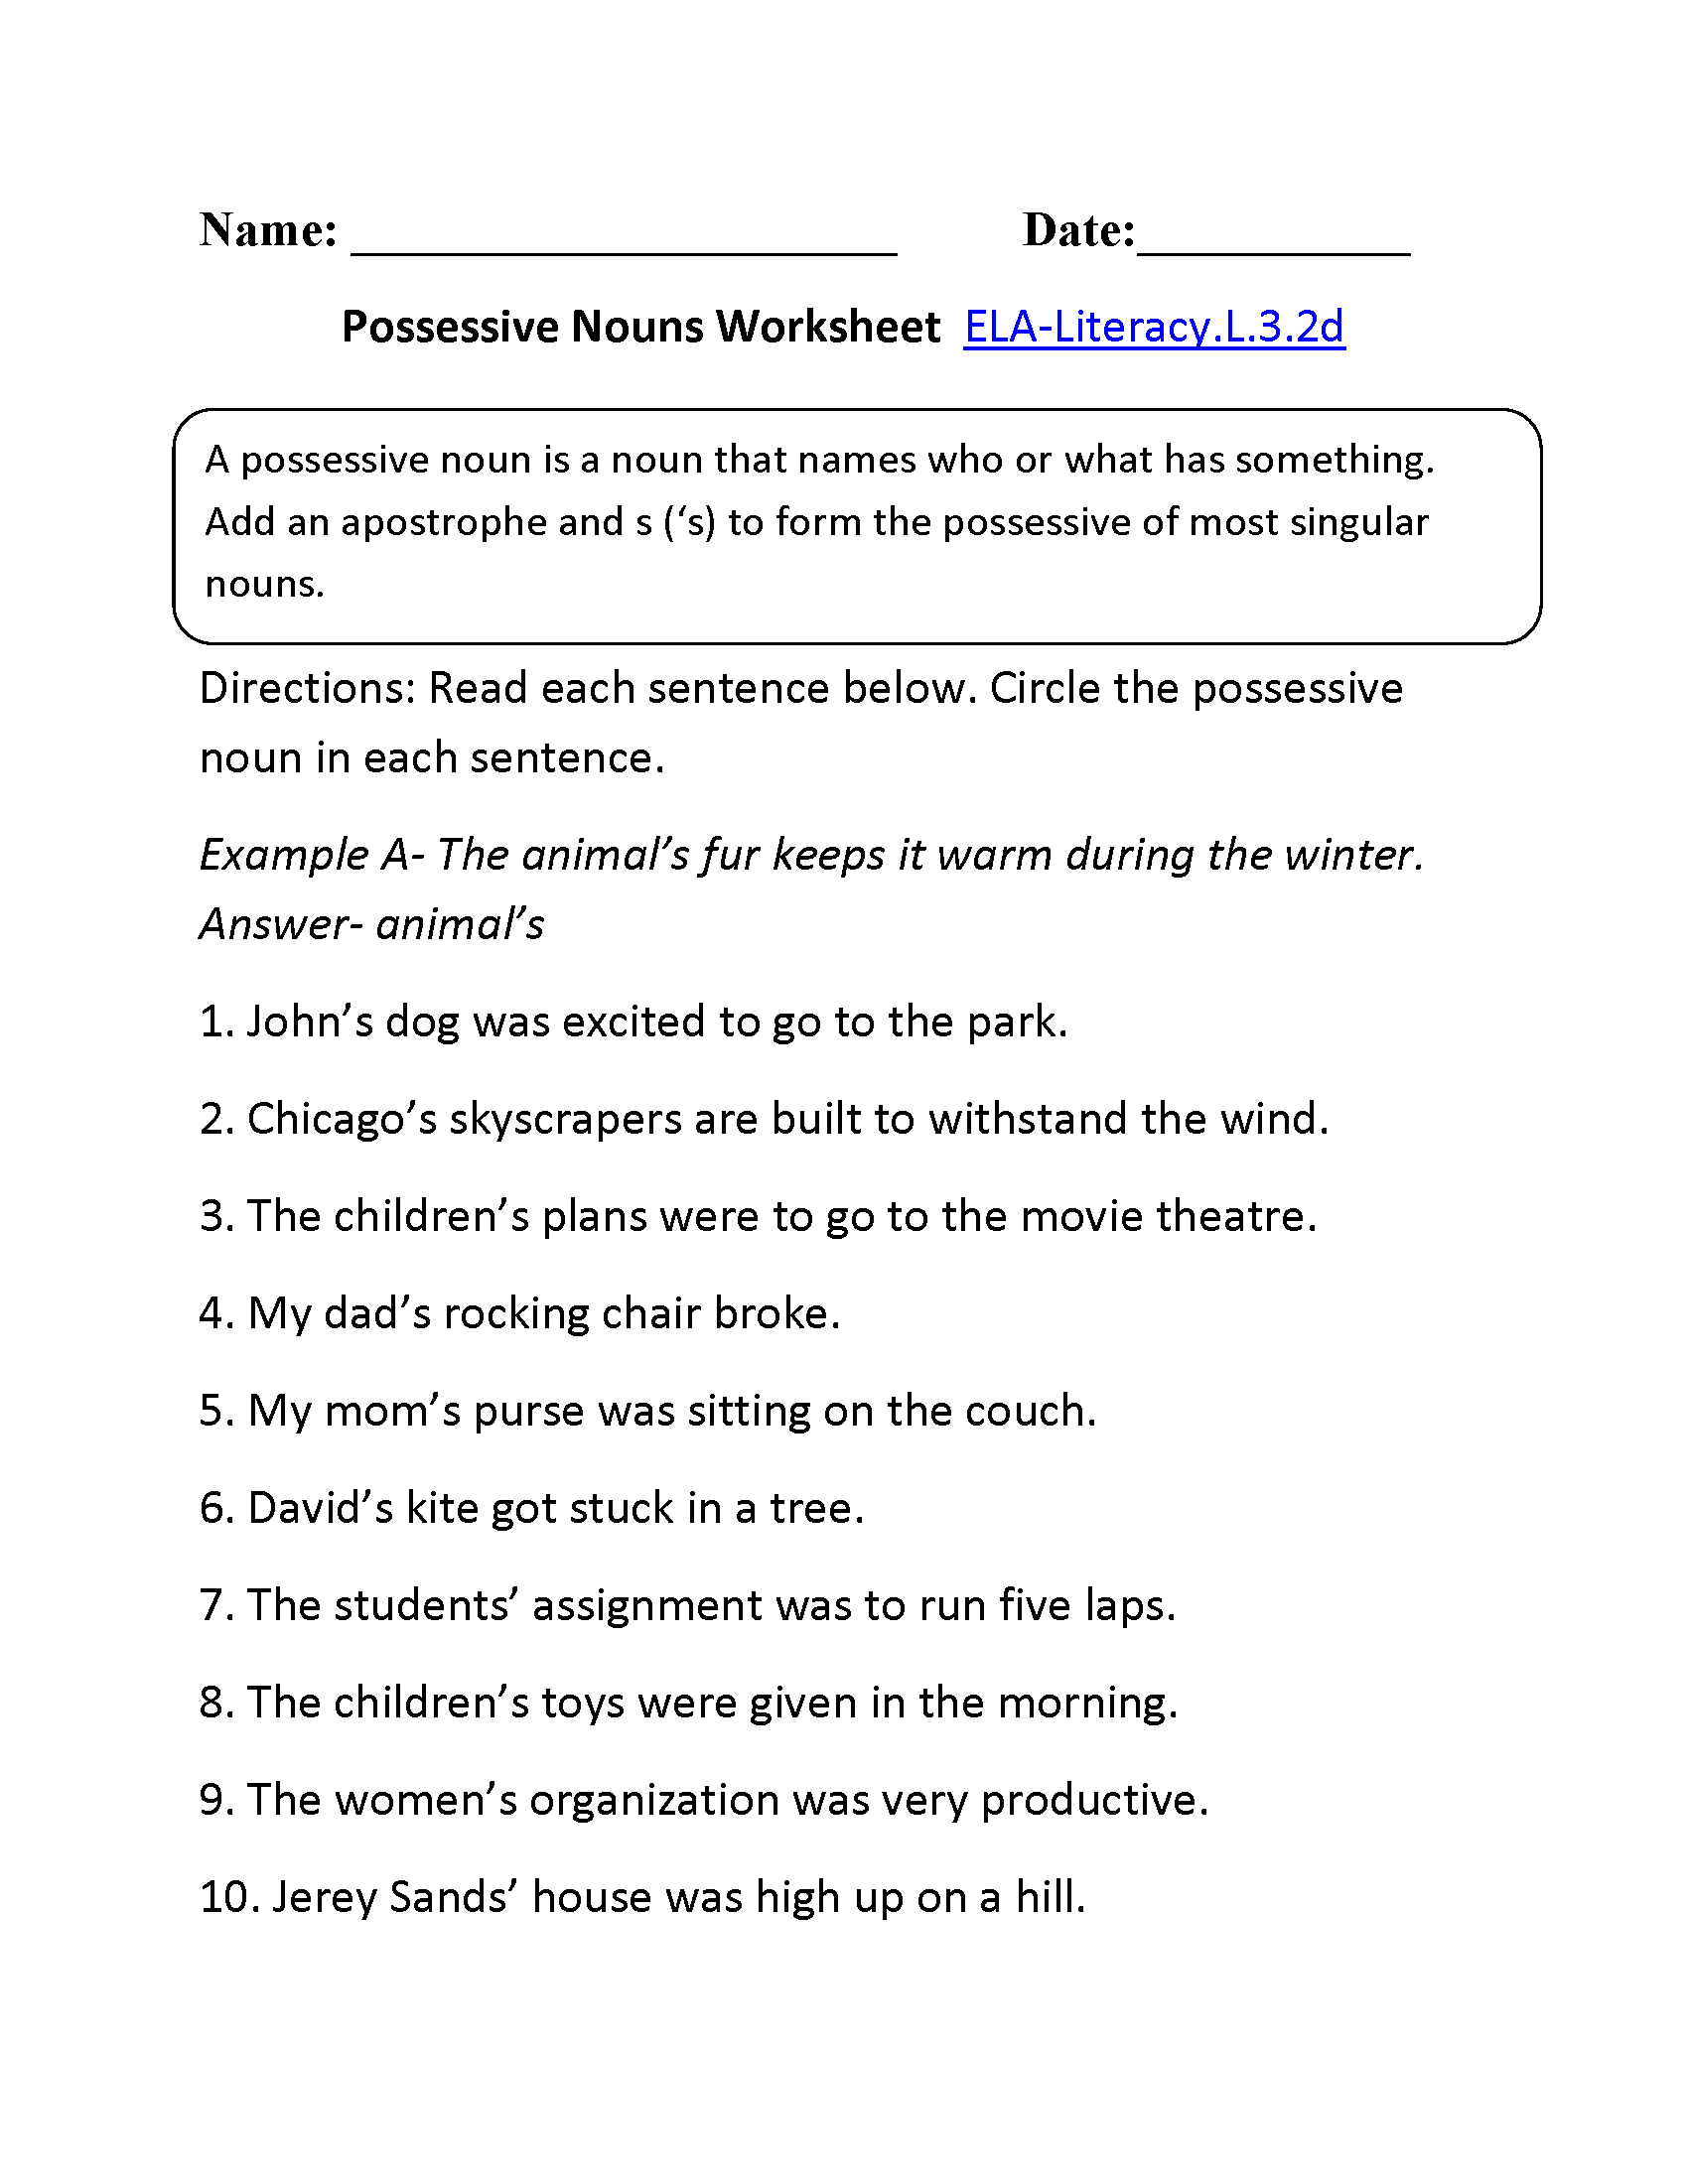 Possessive Nouns Worksheet 1 L 3 2